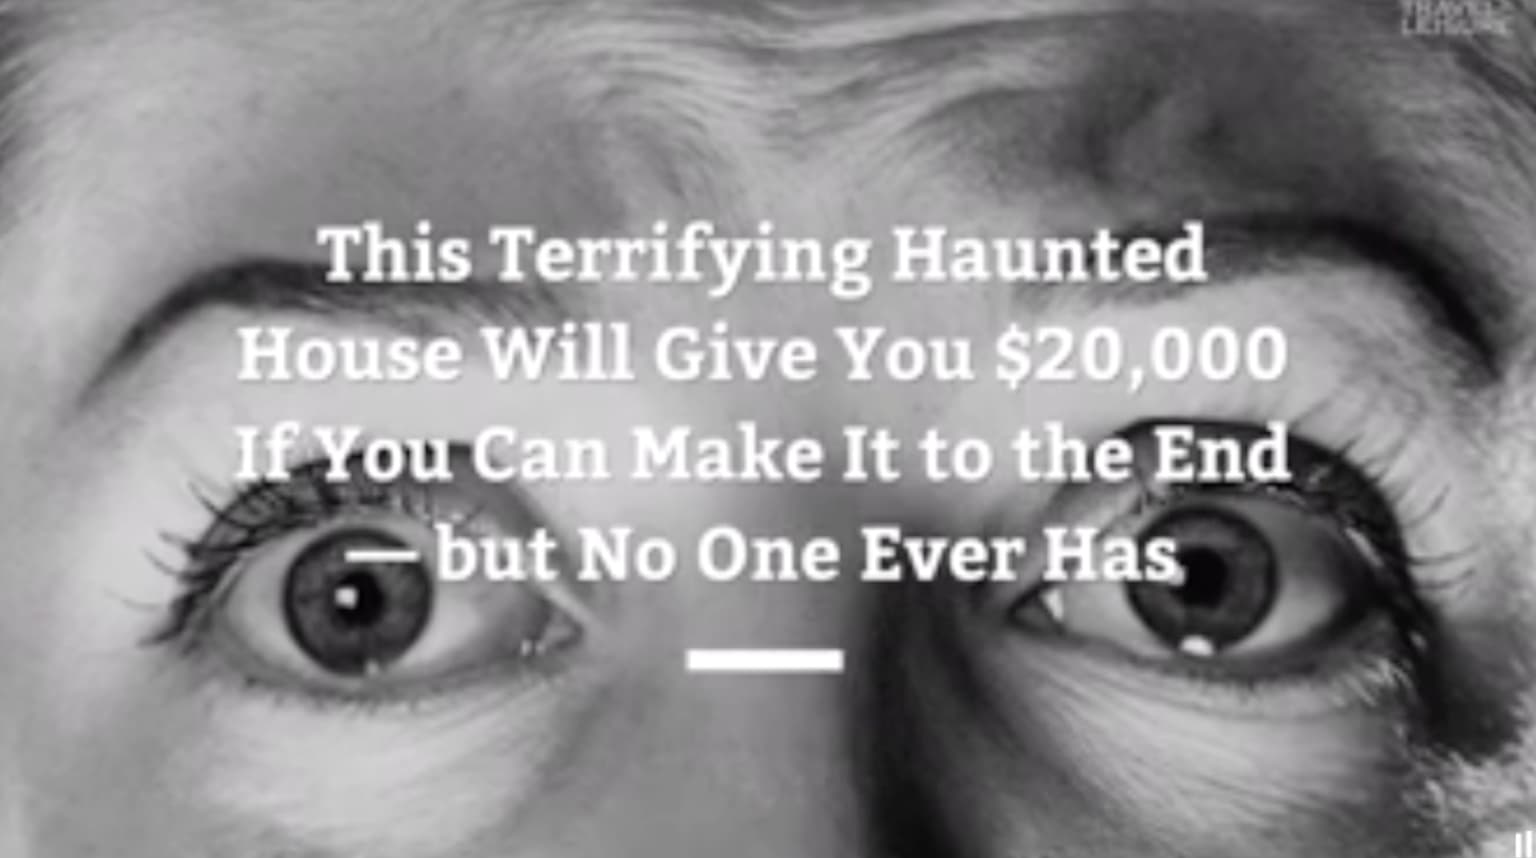 Haunted house offers $20,000 to anyone who can finish it